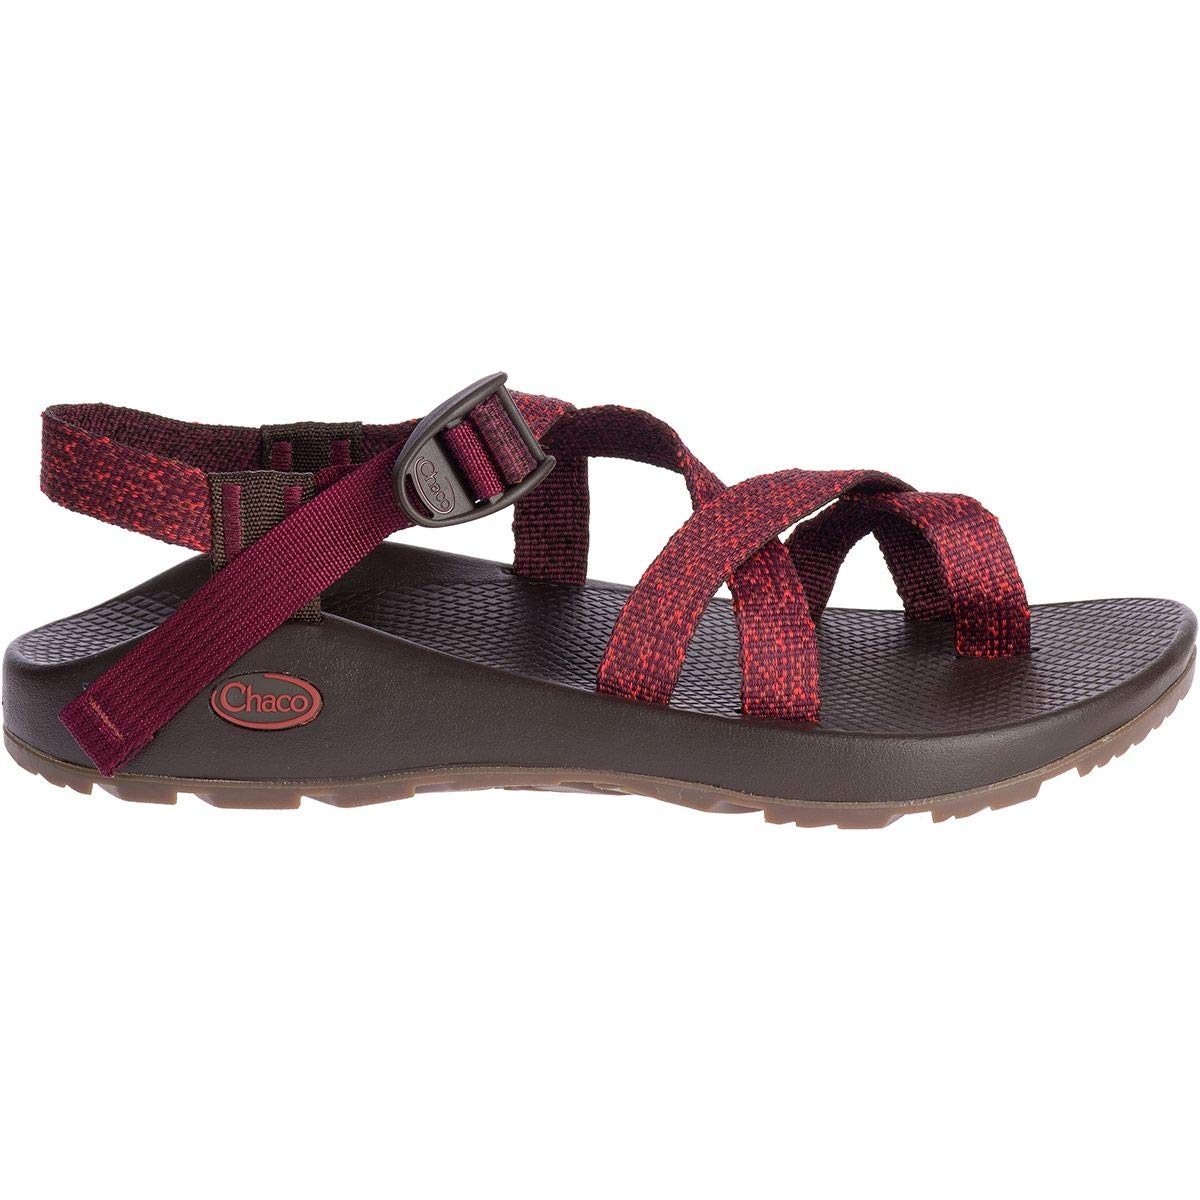 Scaled Port Chaco Women's Z2 Classic Athletic Sandal